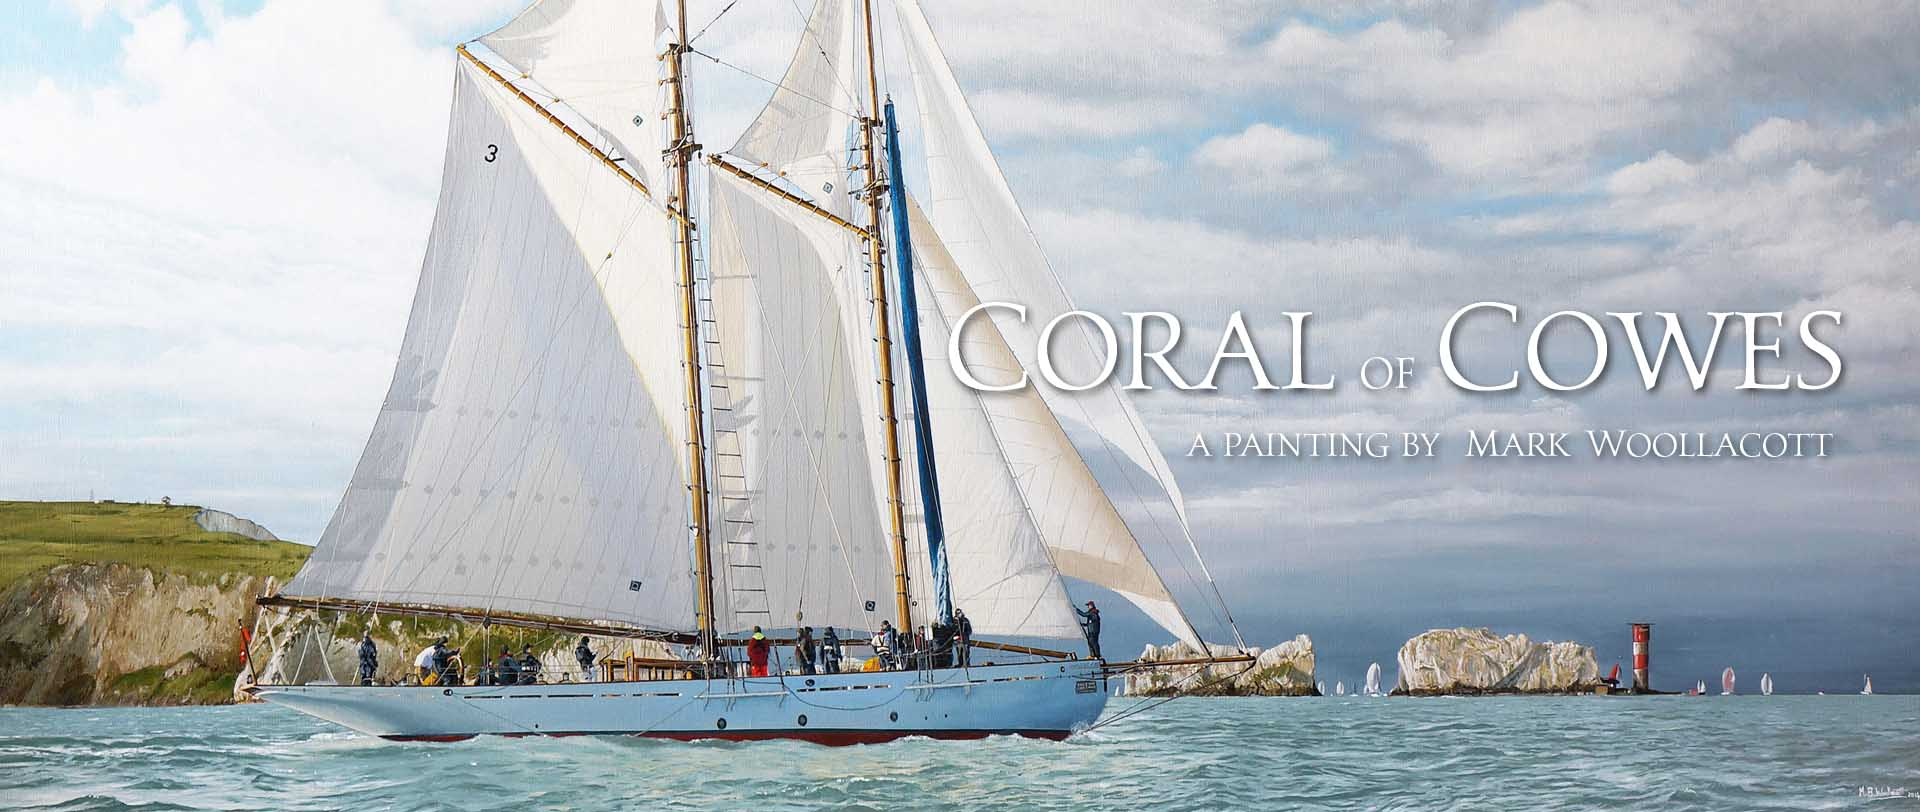 Coral of Cowes